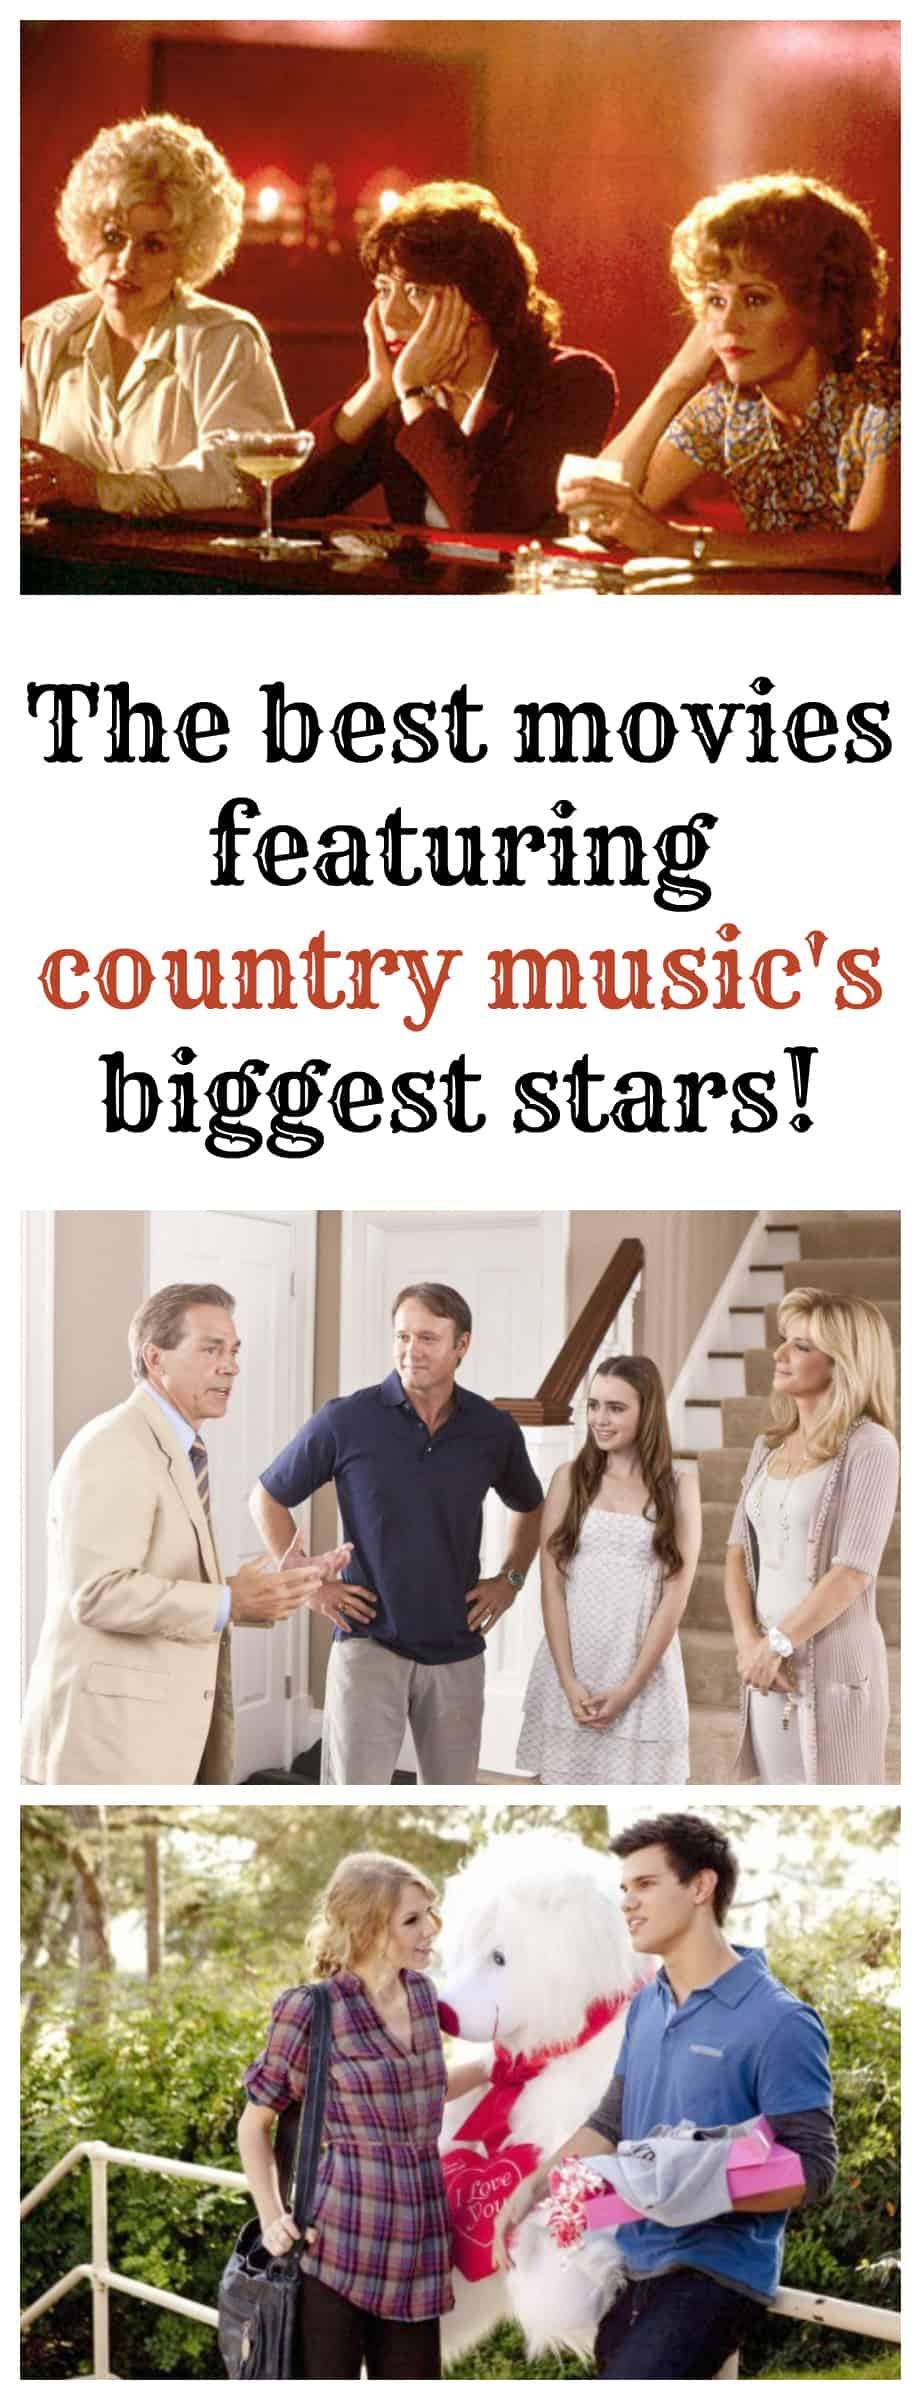 Movies with country stars